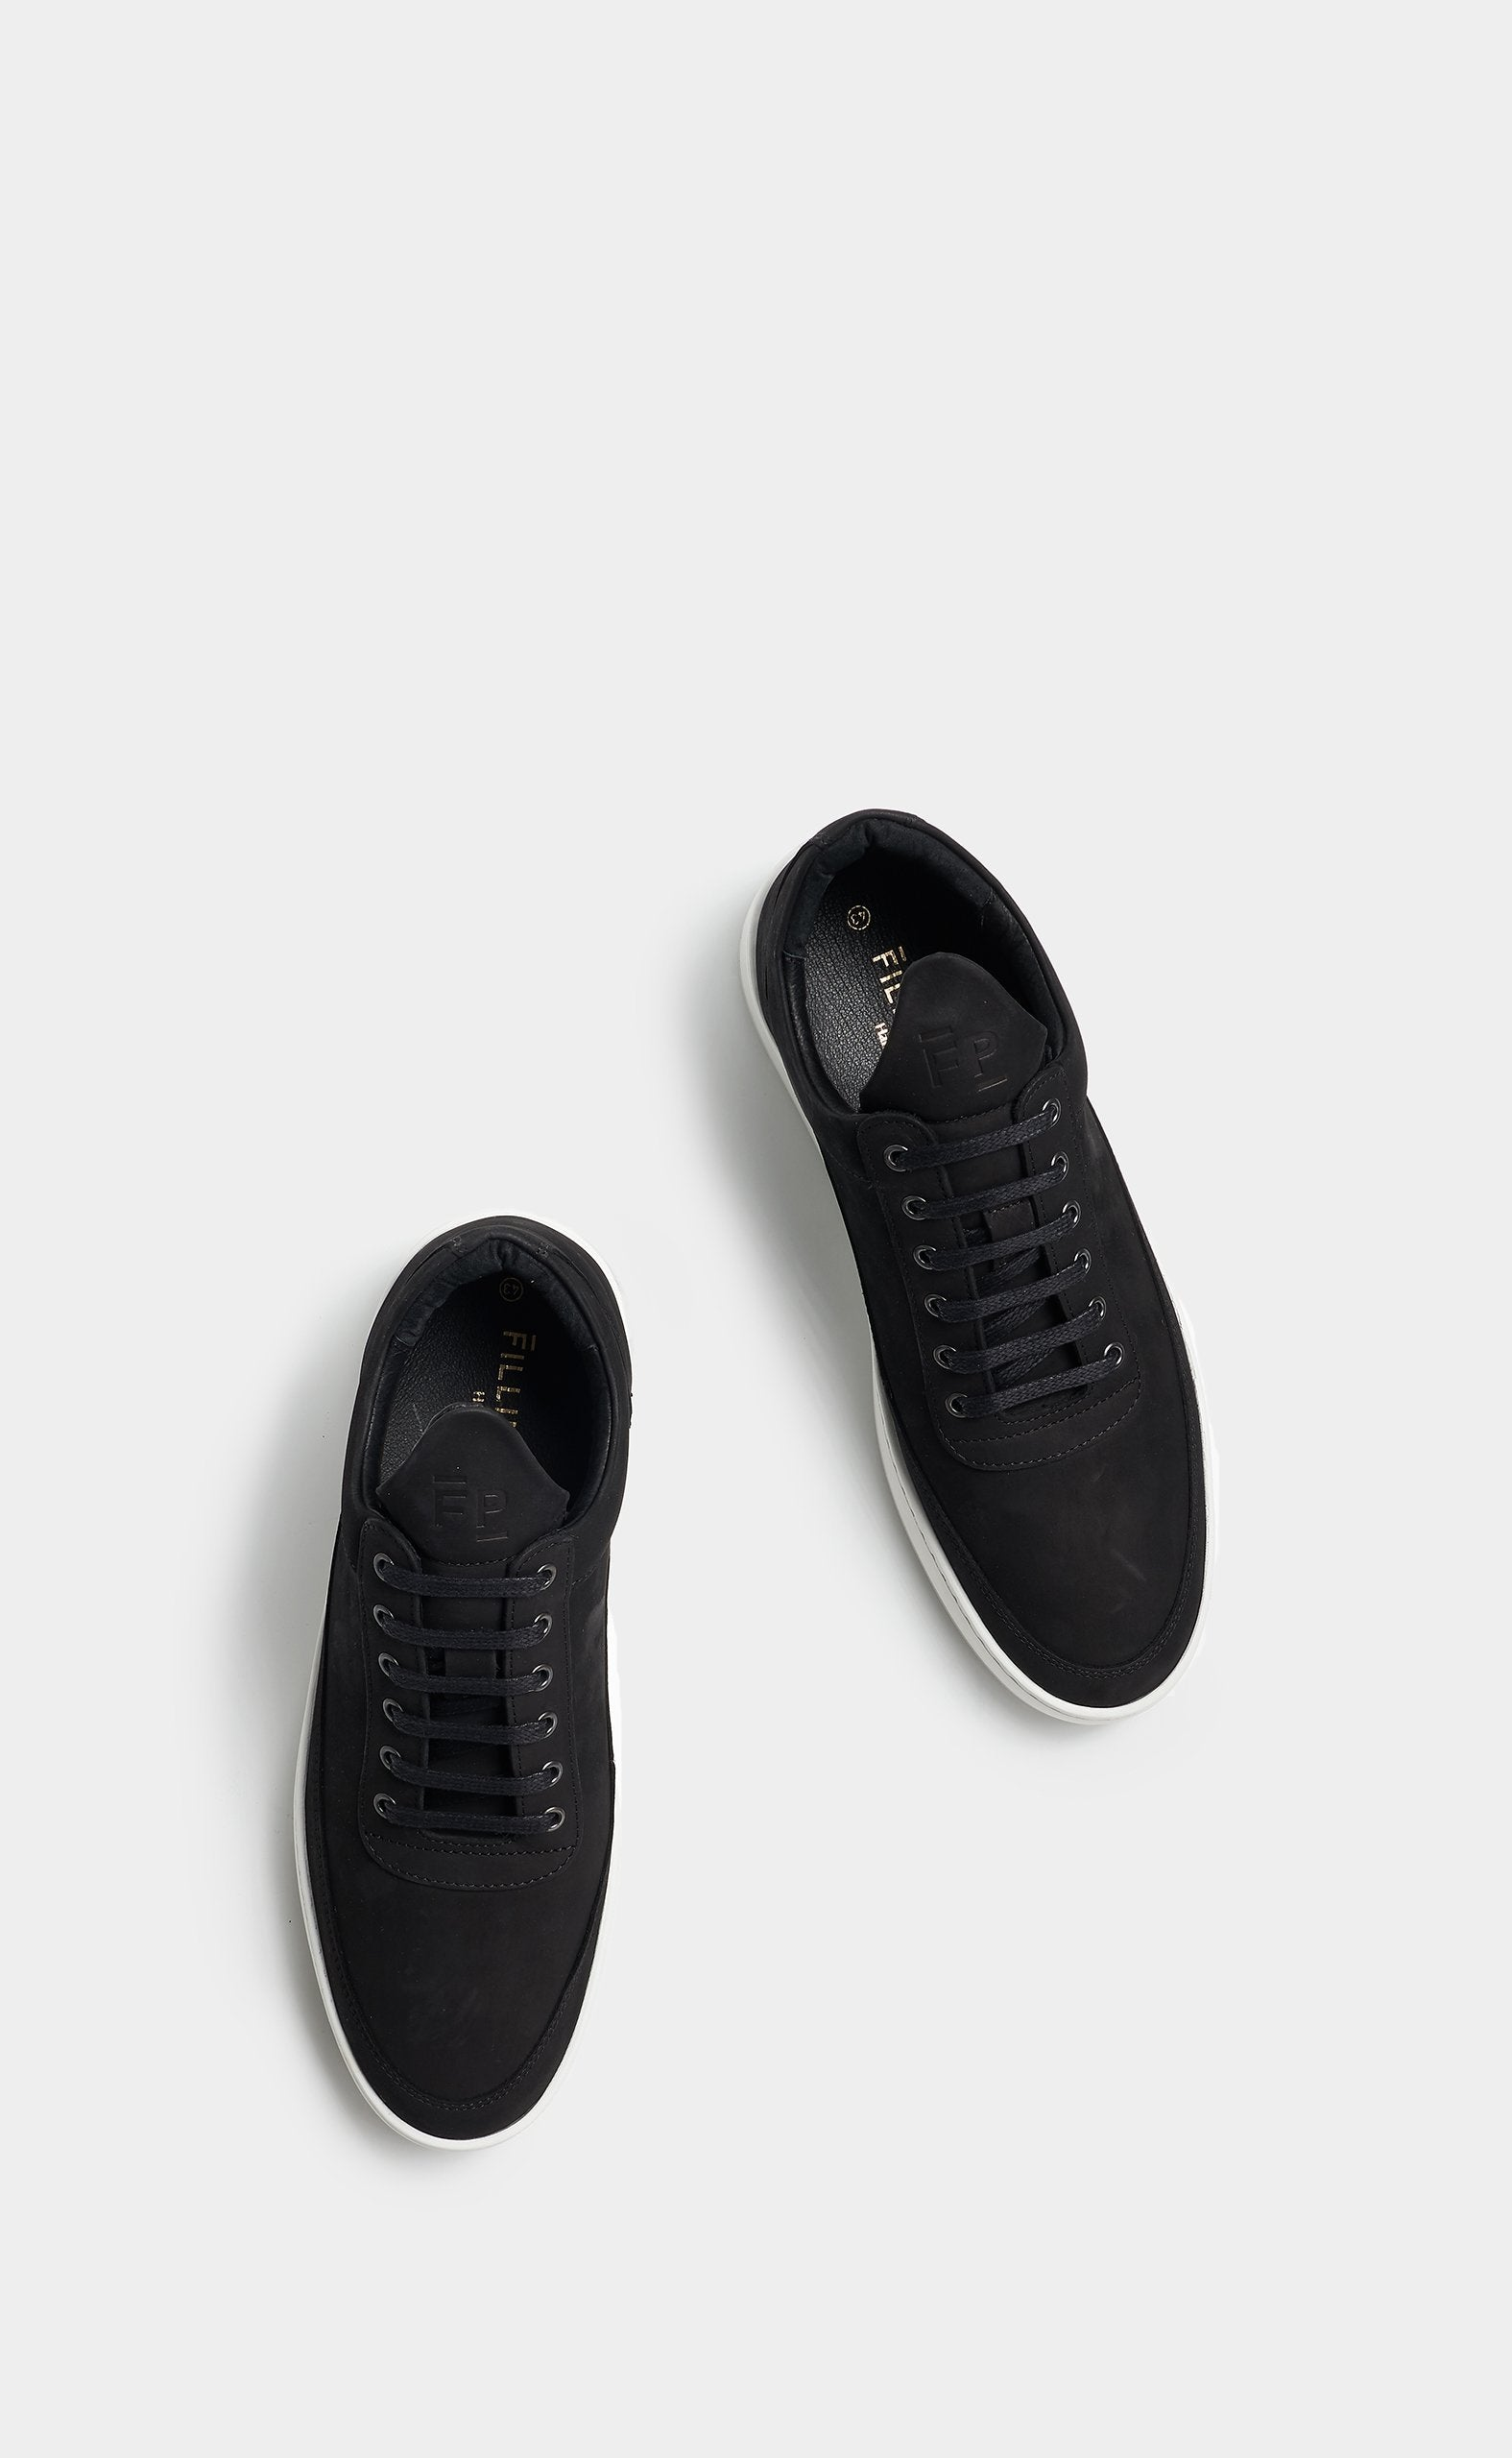 Low Top Plain Lane Nubuck Black - men